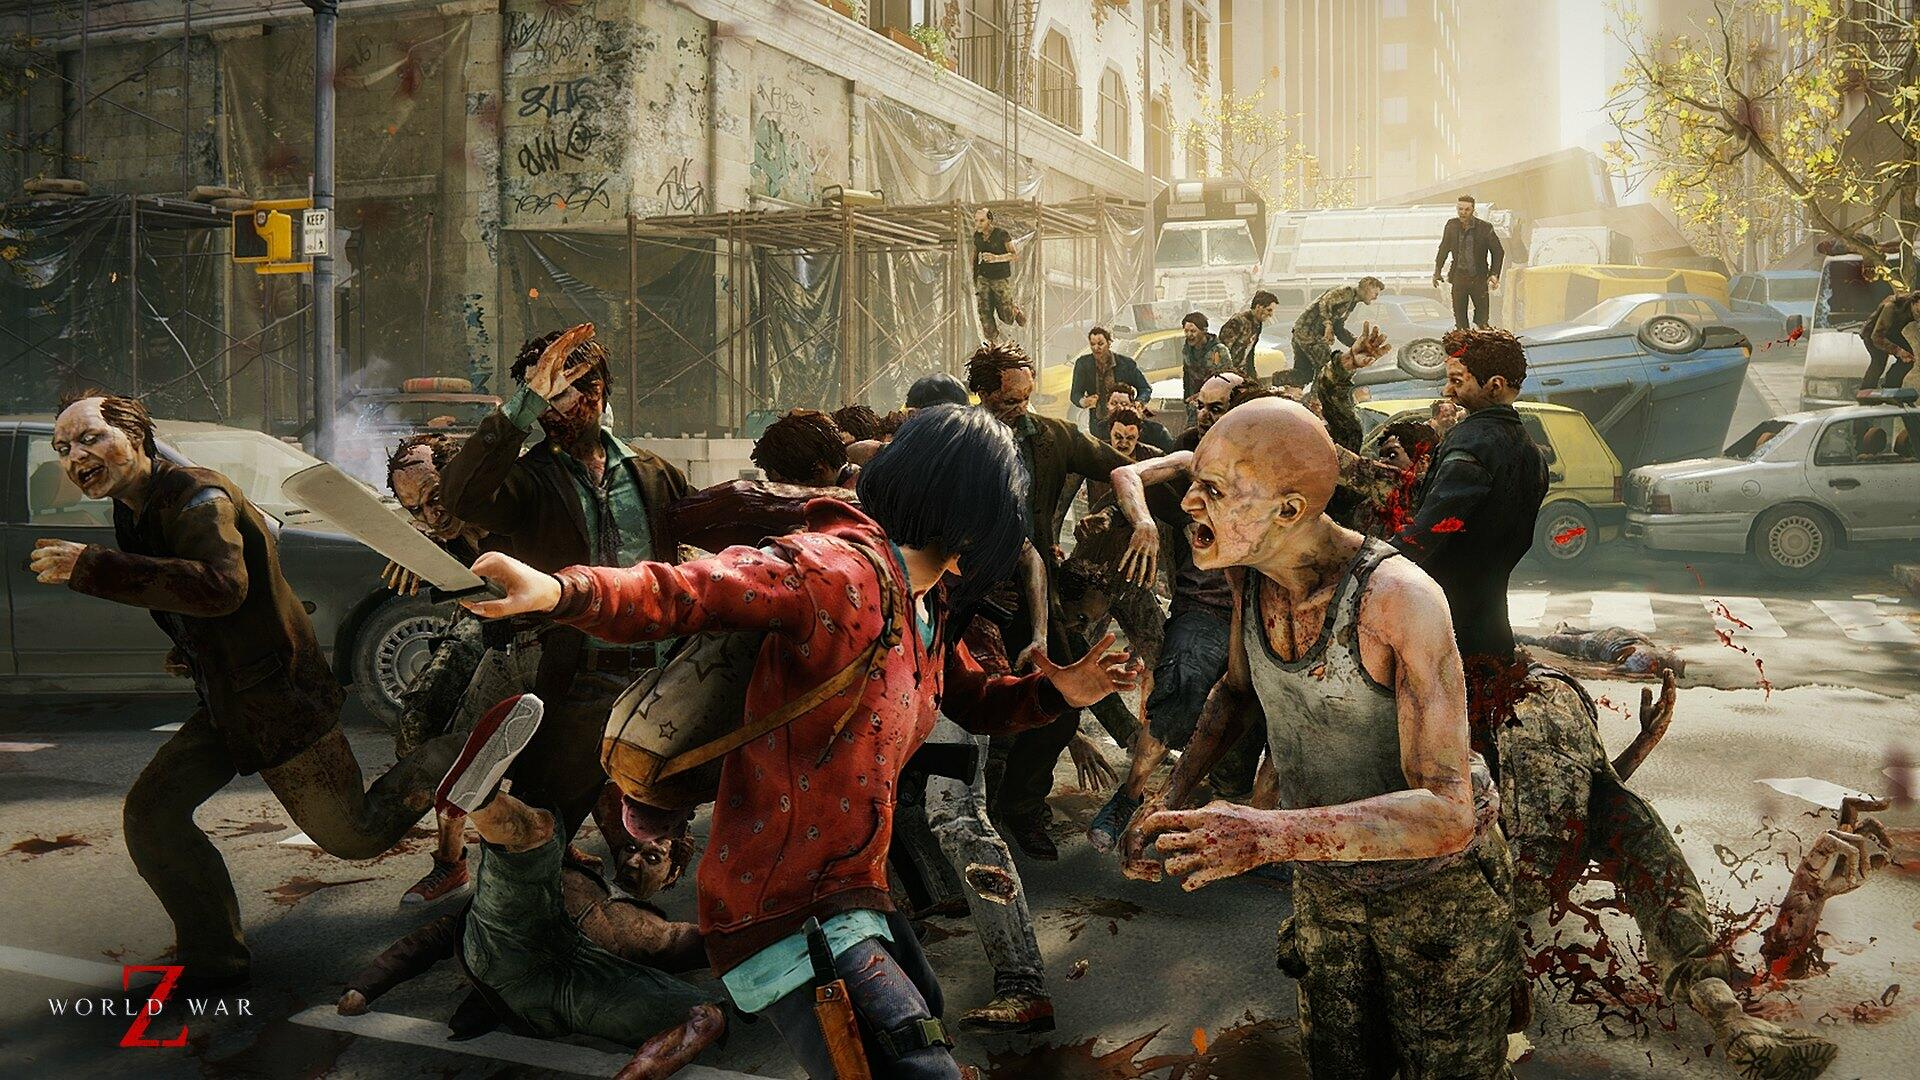 World War Z Classes - Best Class, Levelling Up, Upgrading Skills